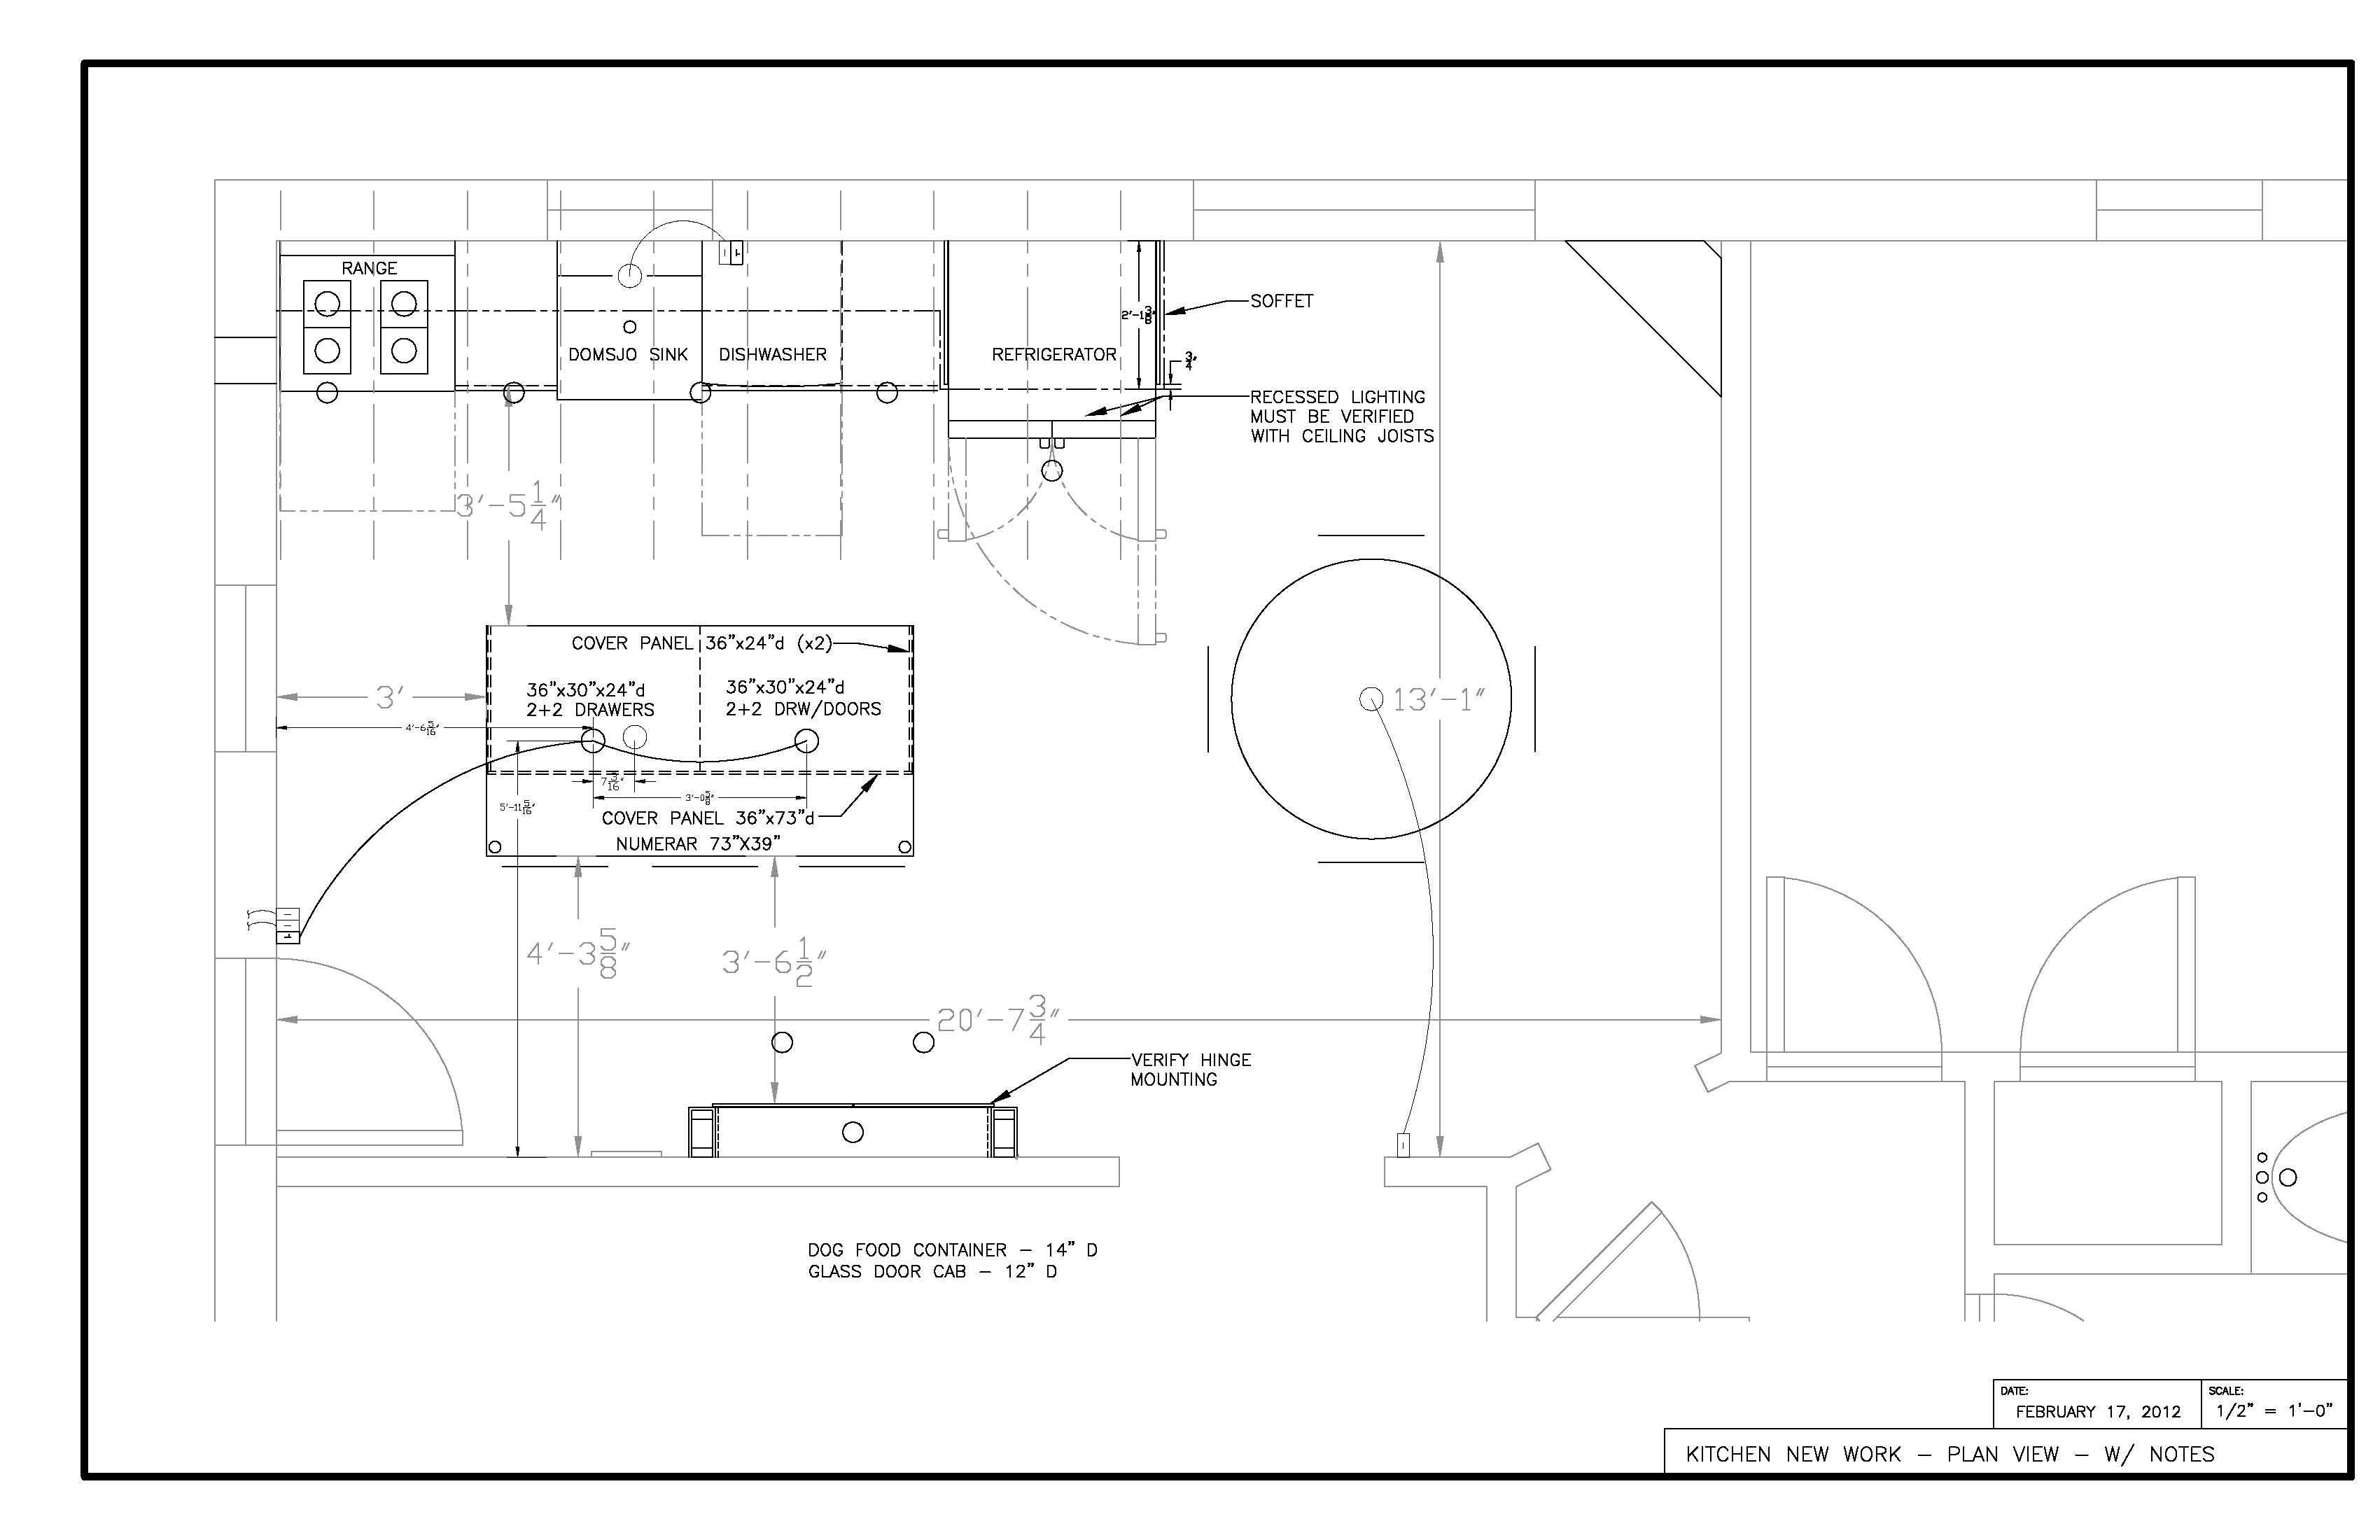 hight resolution of kitchen plan view current working drawing w electrical